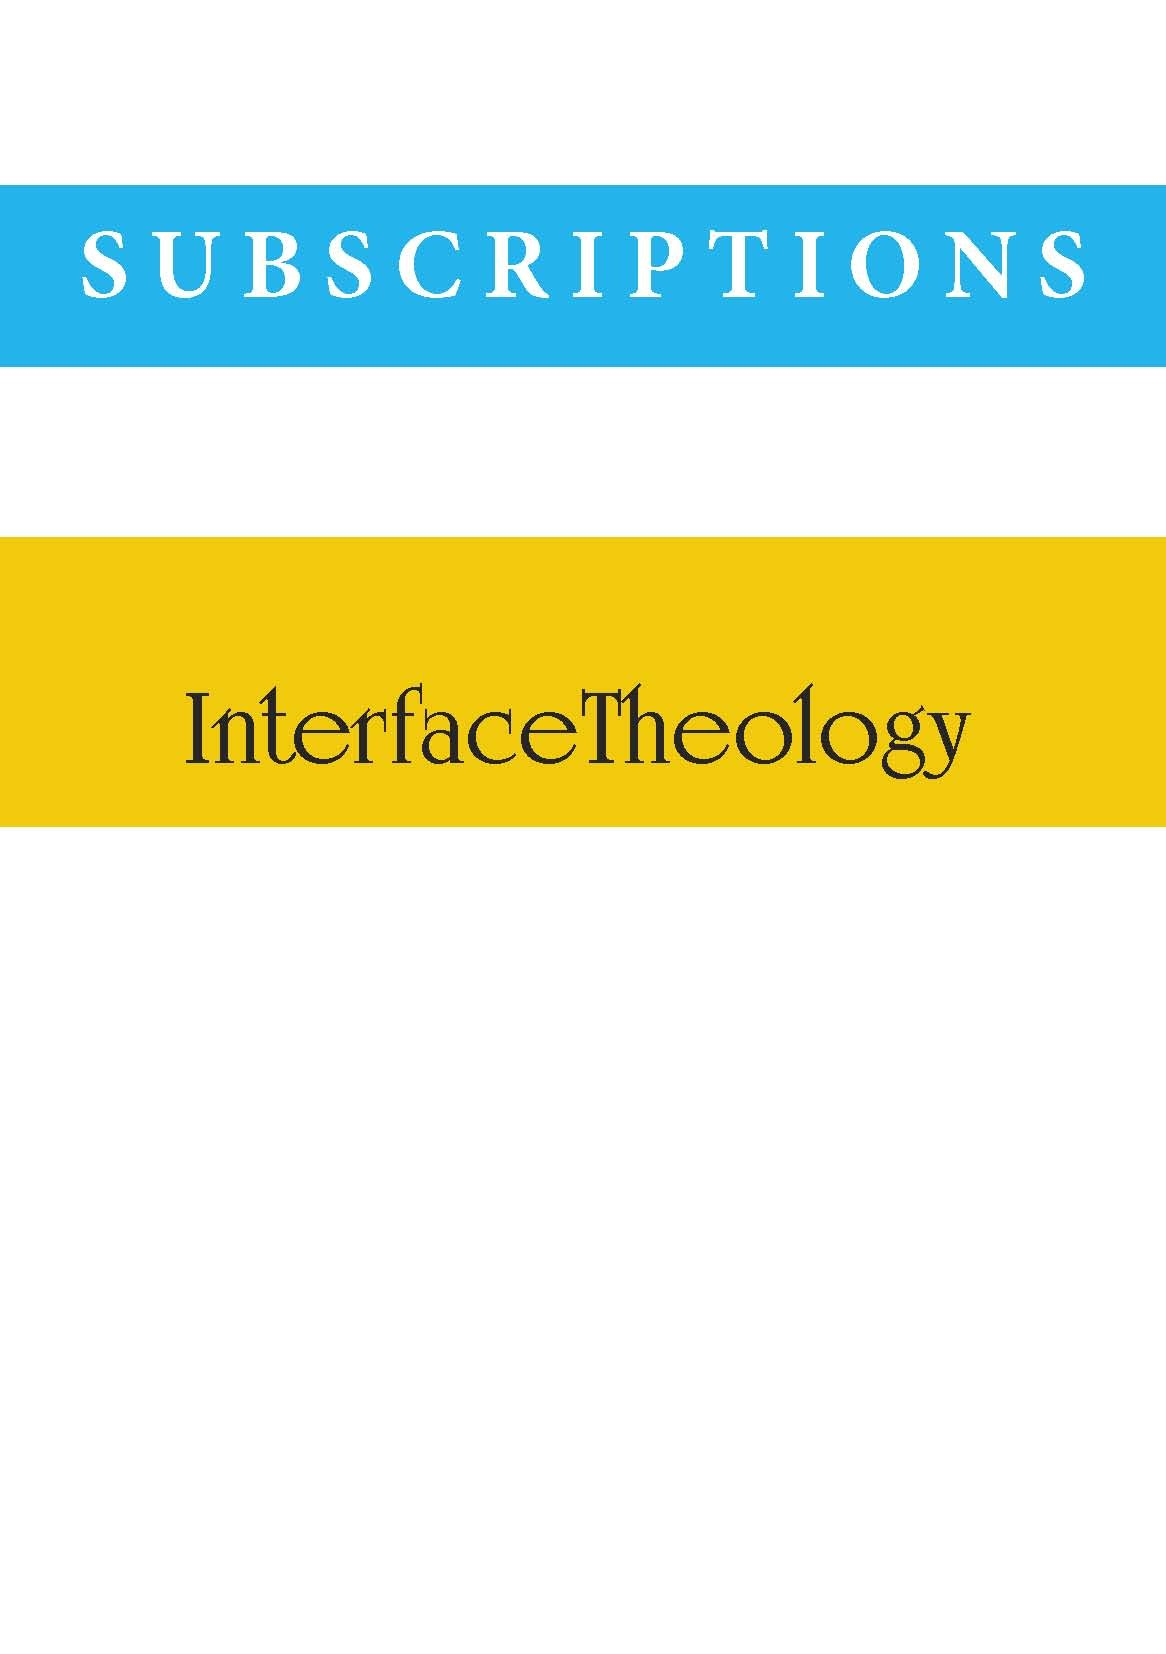 InterfaceTheology Subscriptions (INDIVIDUALS, OVERSEAS)